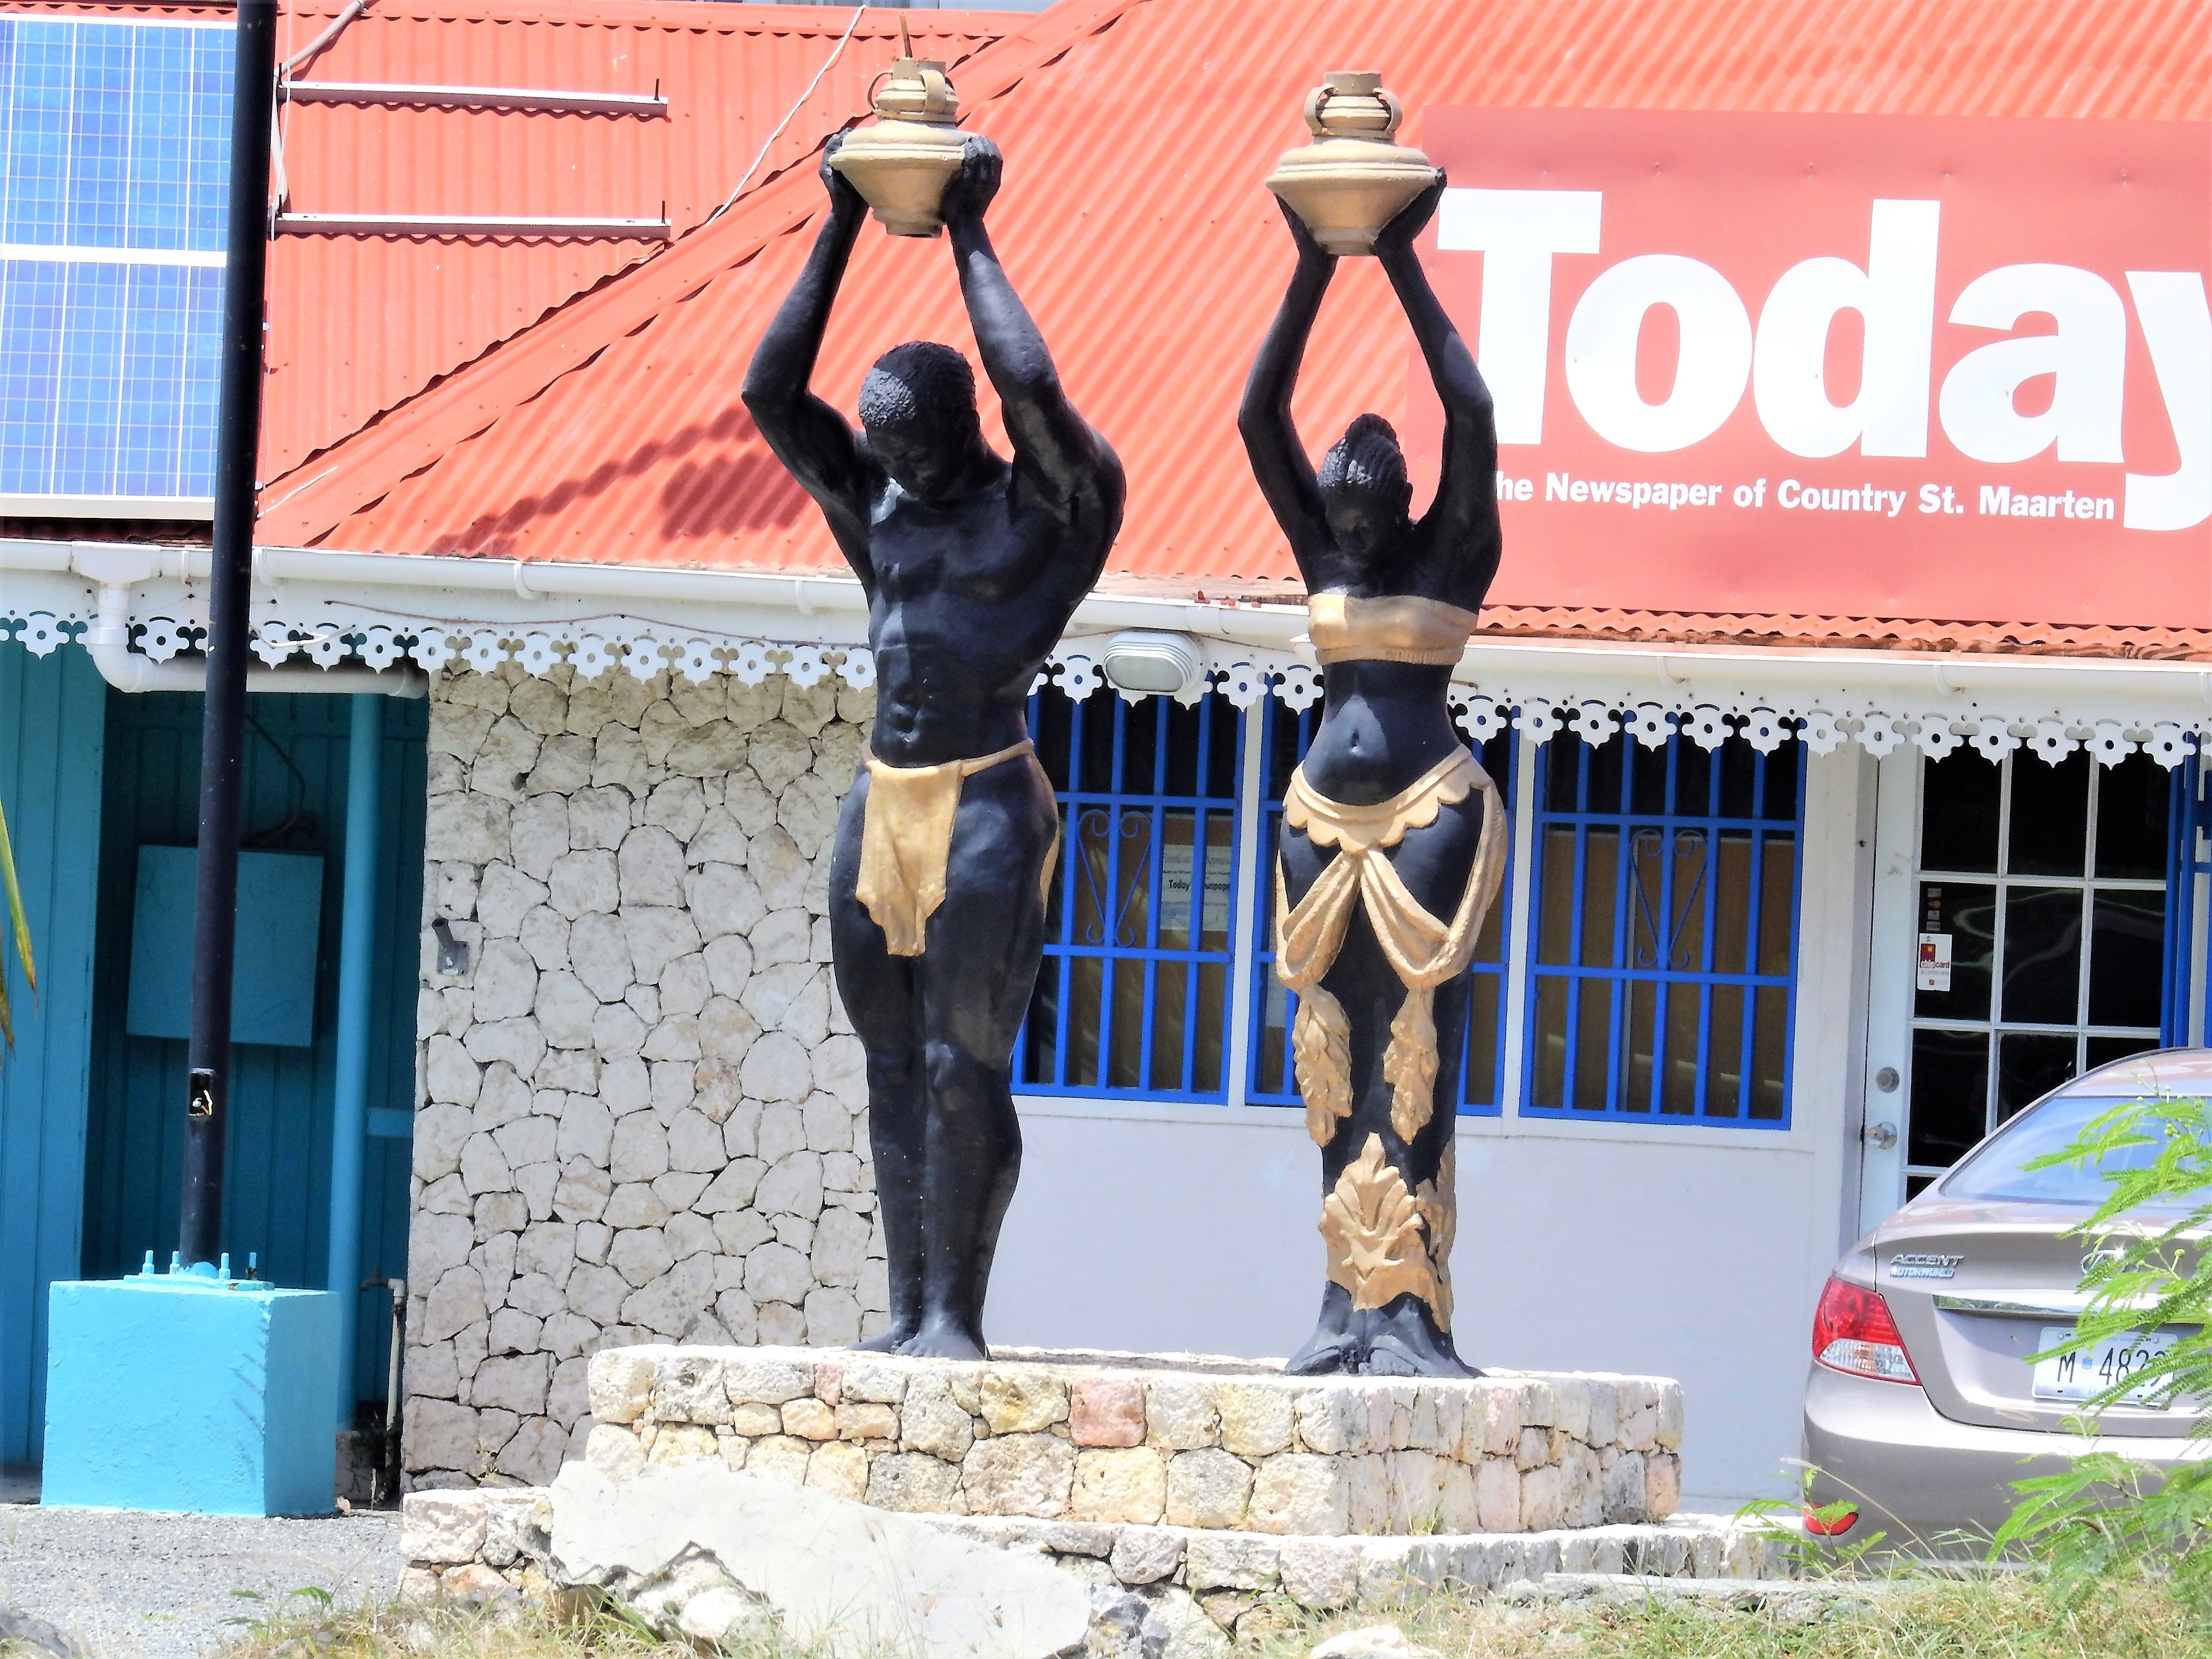 Interesting statues in front of the Today Newspaper office in St. Maarten.